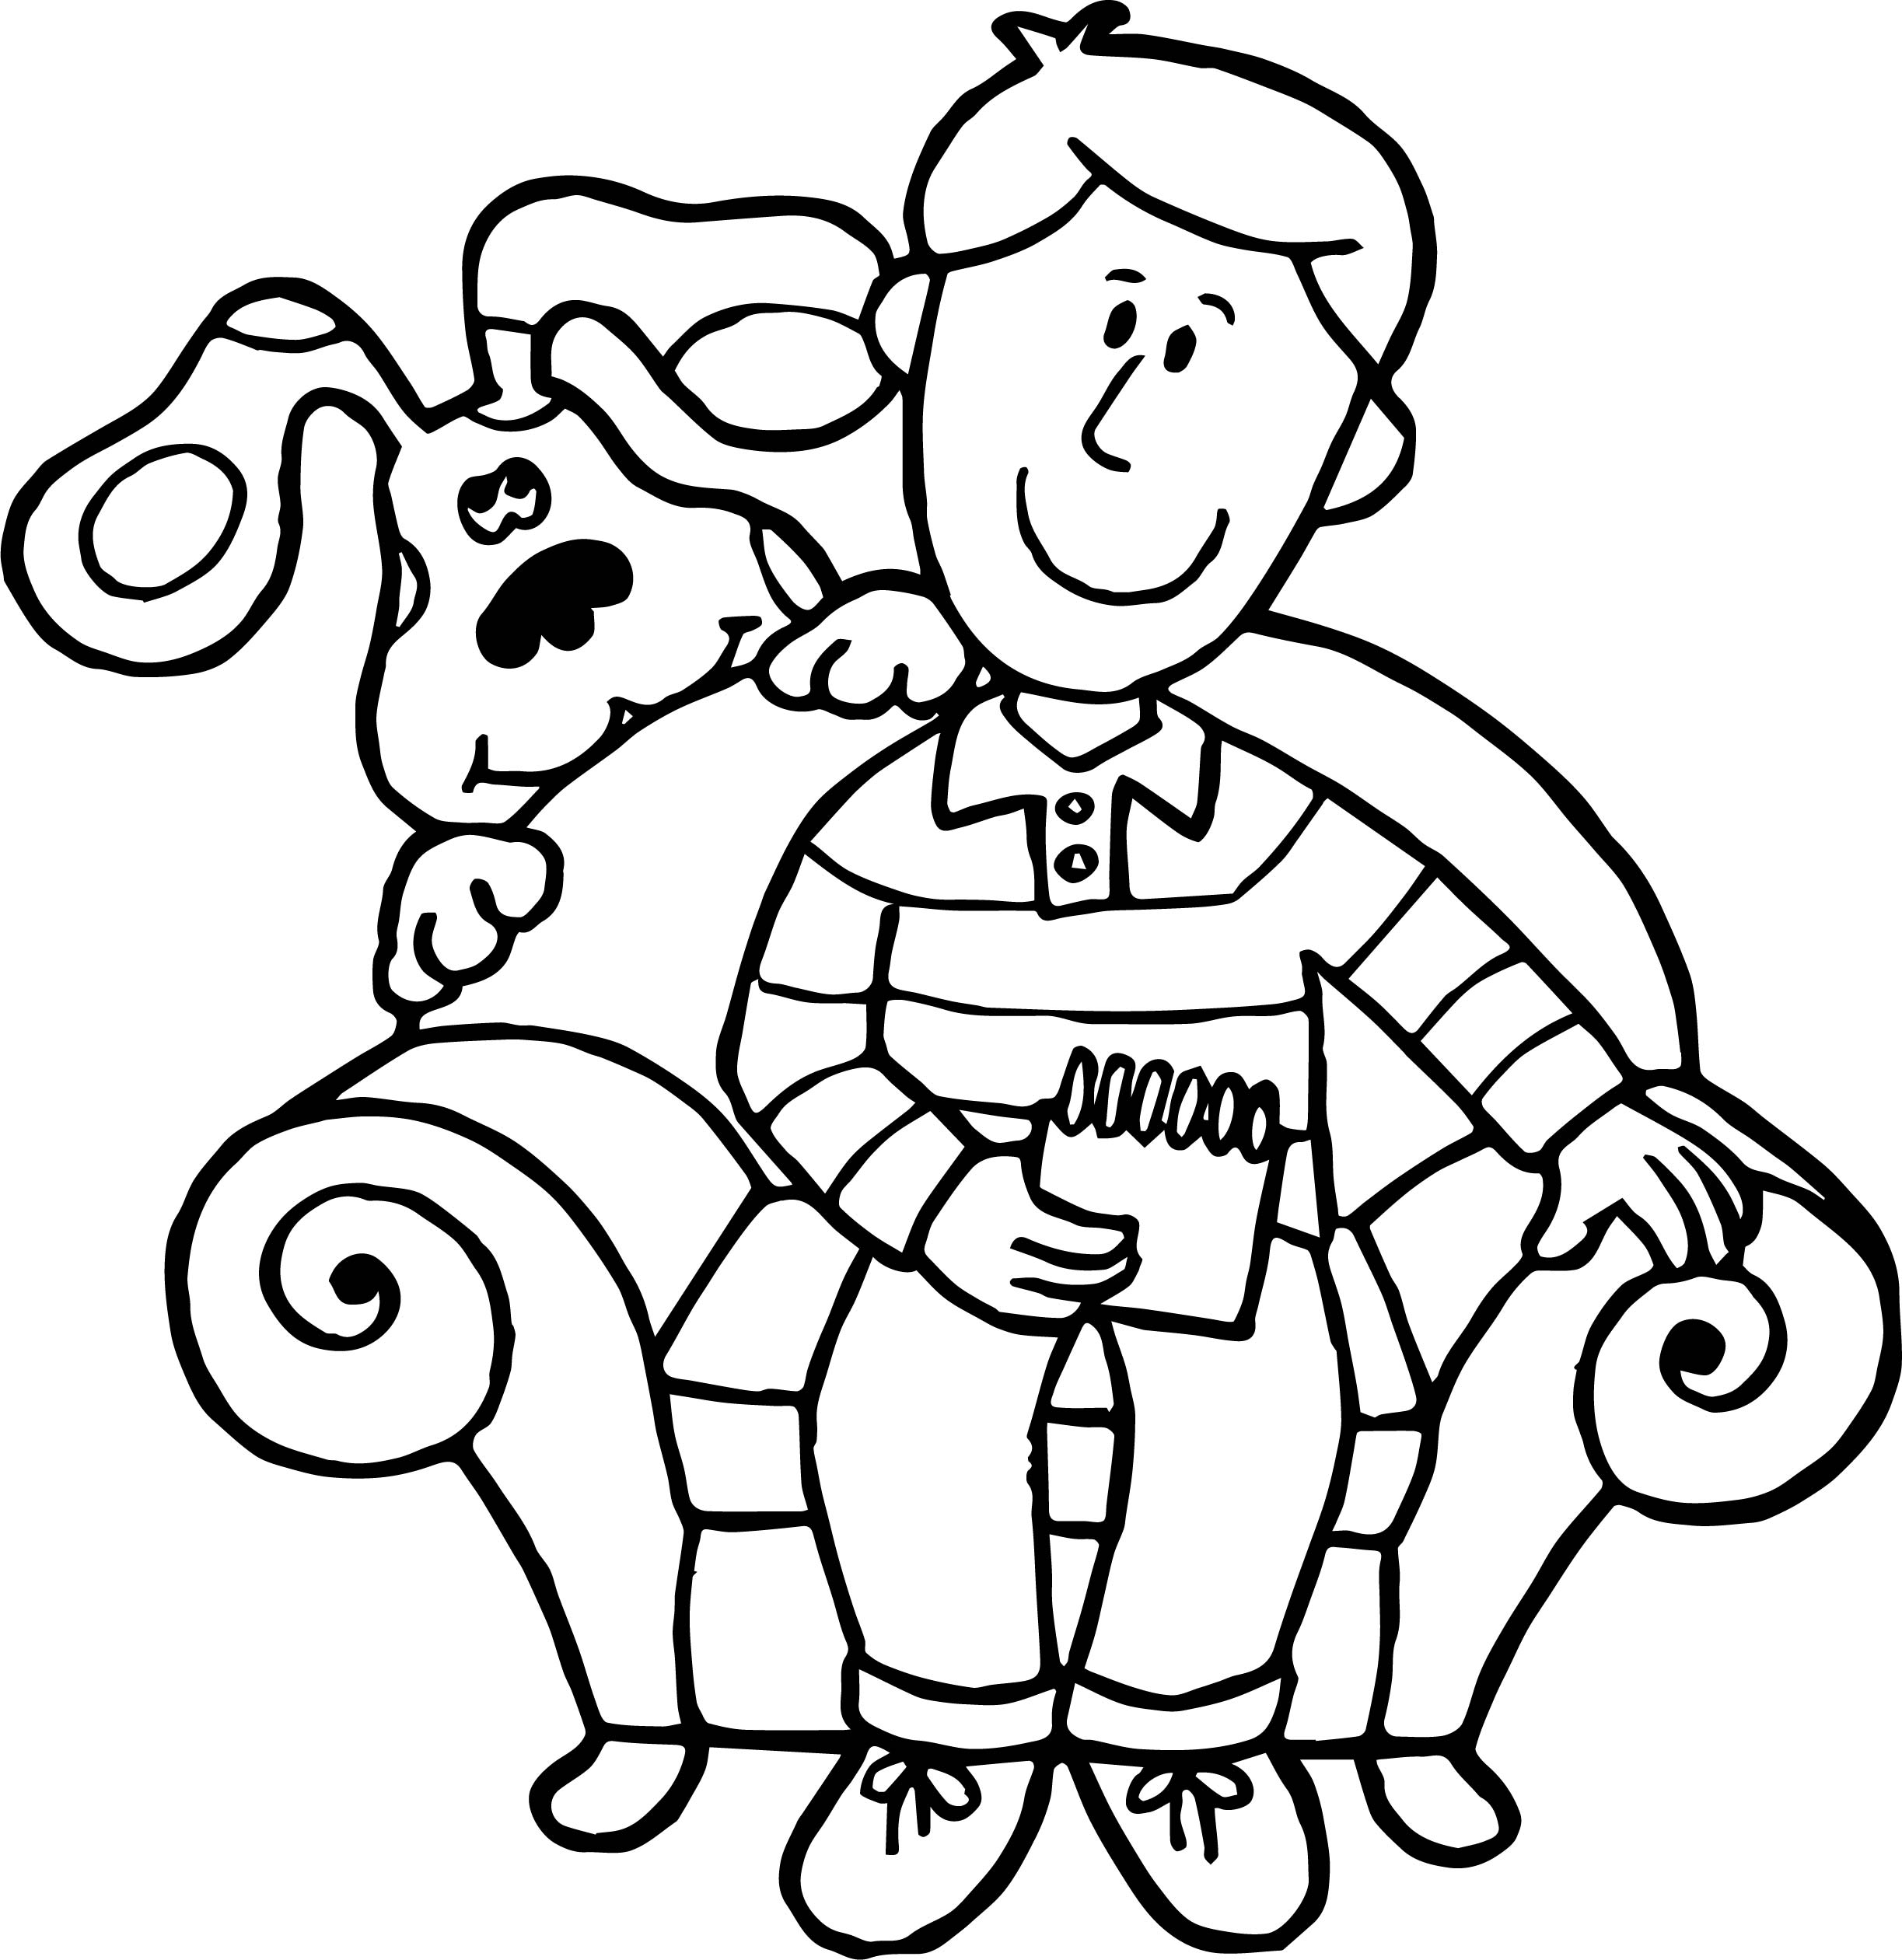 Blue's Clues Man Coloring Page